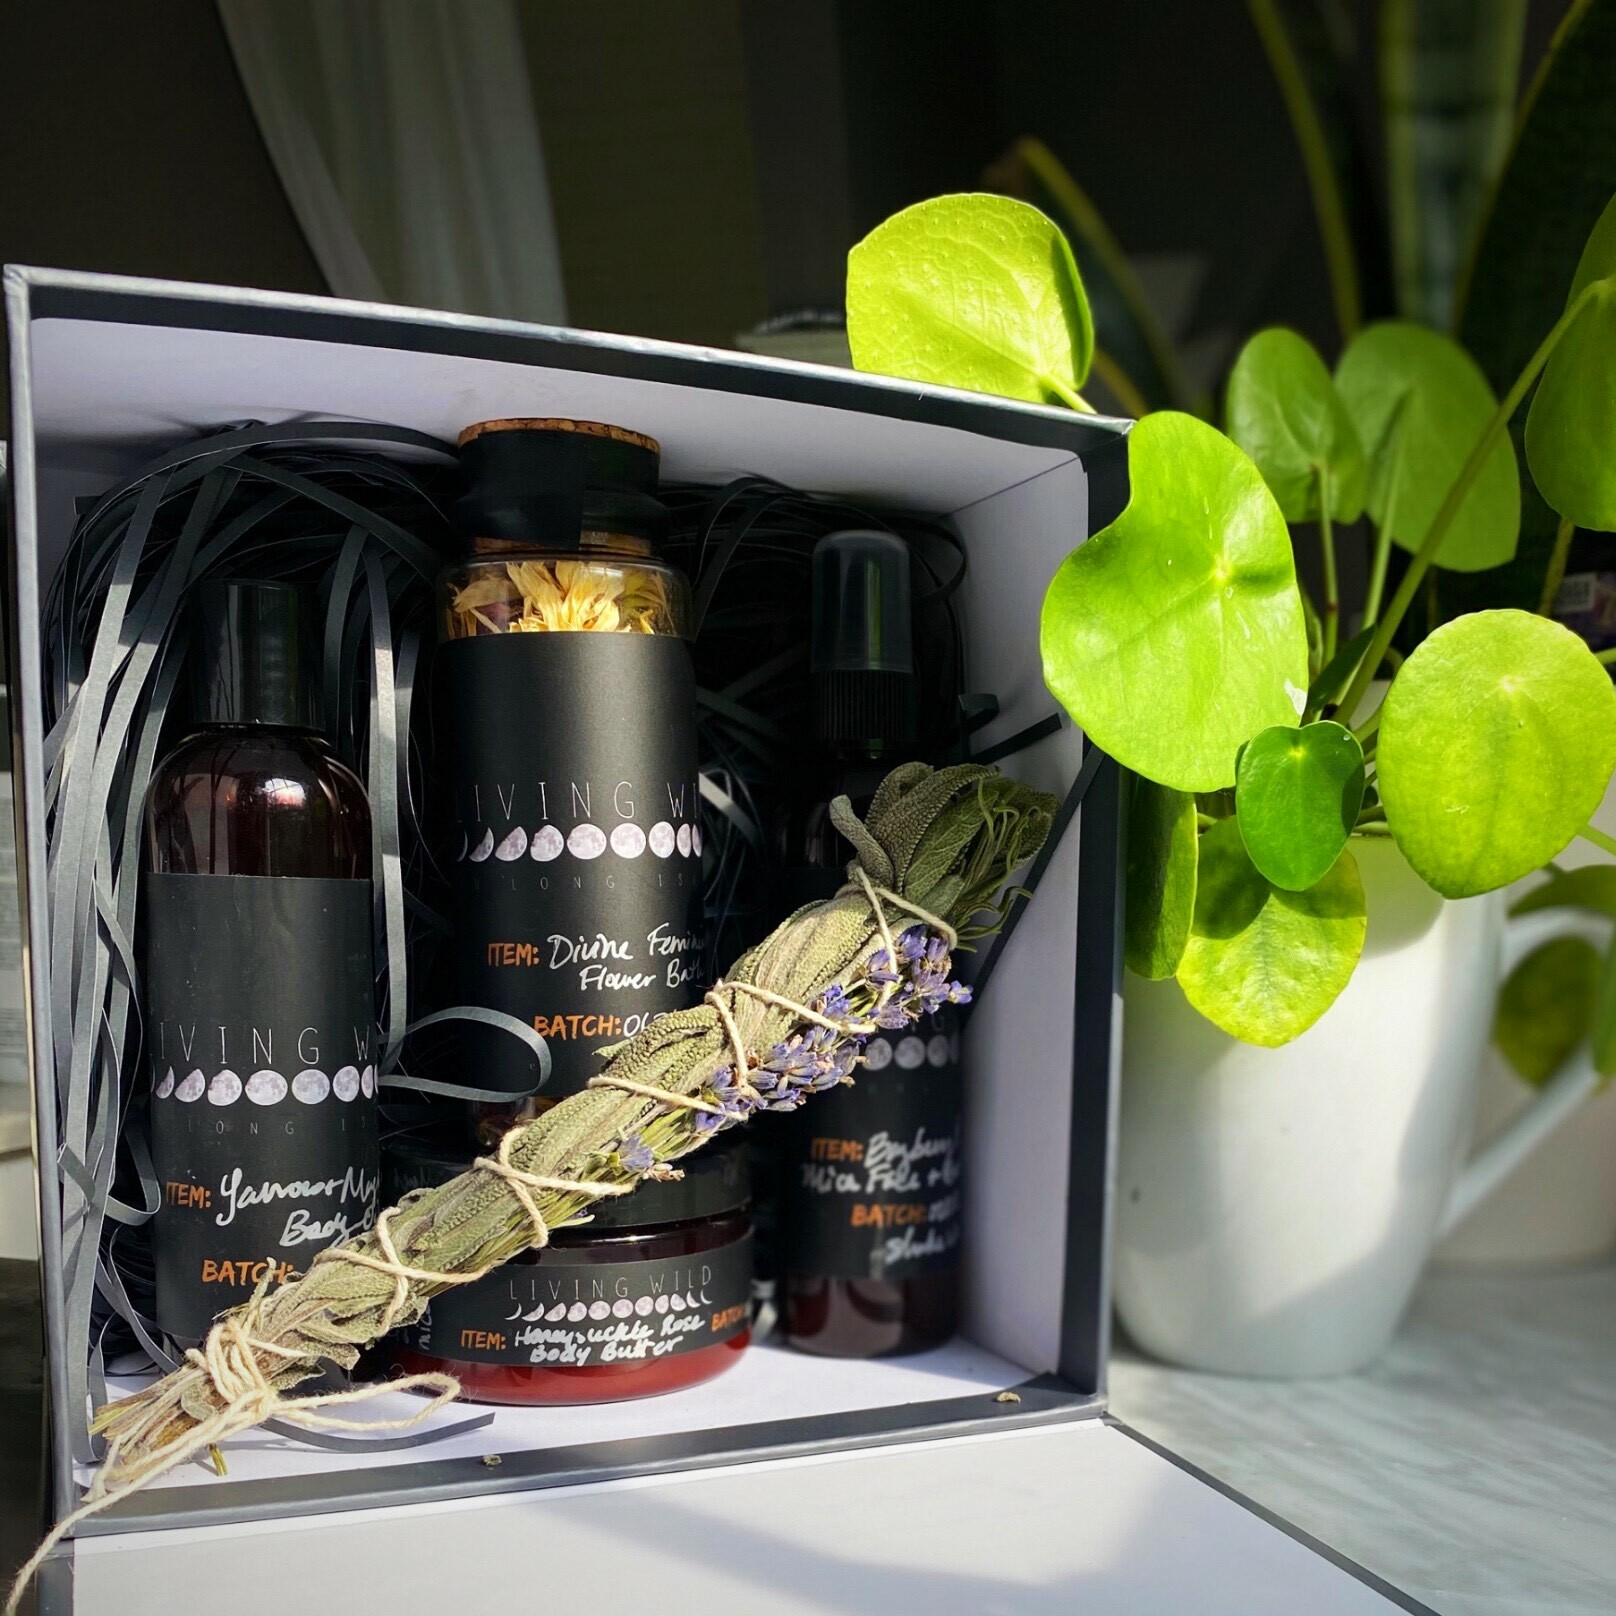 A pampering kit for mothers made by Living Wild on Long Island.